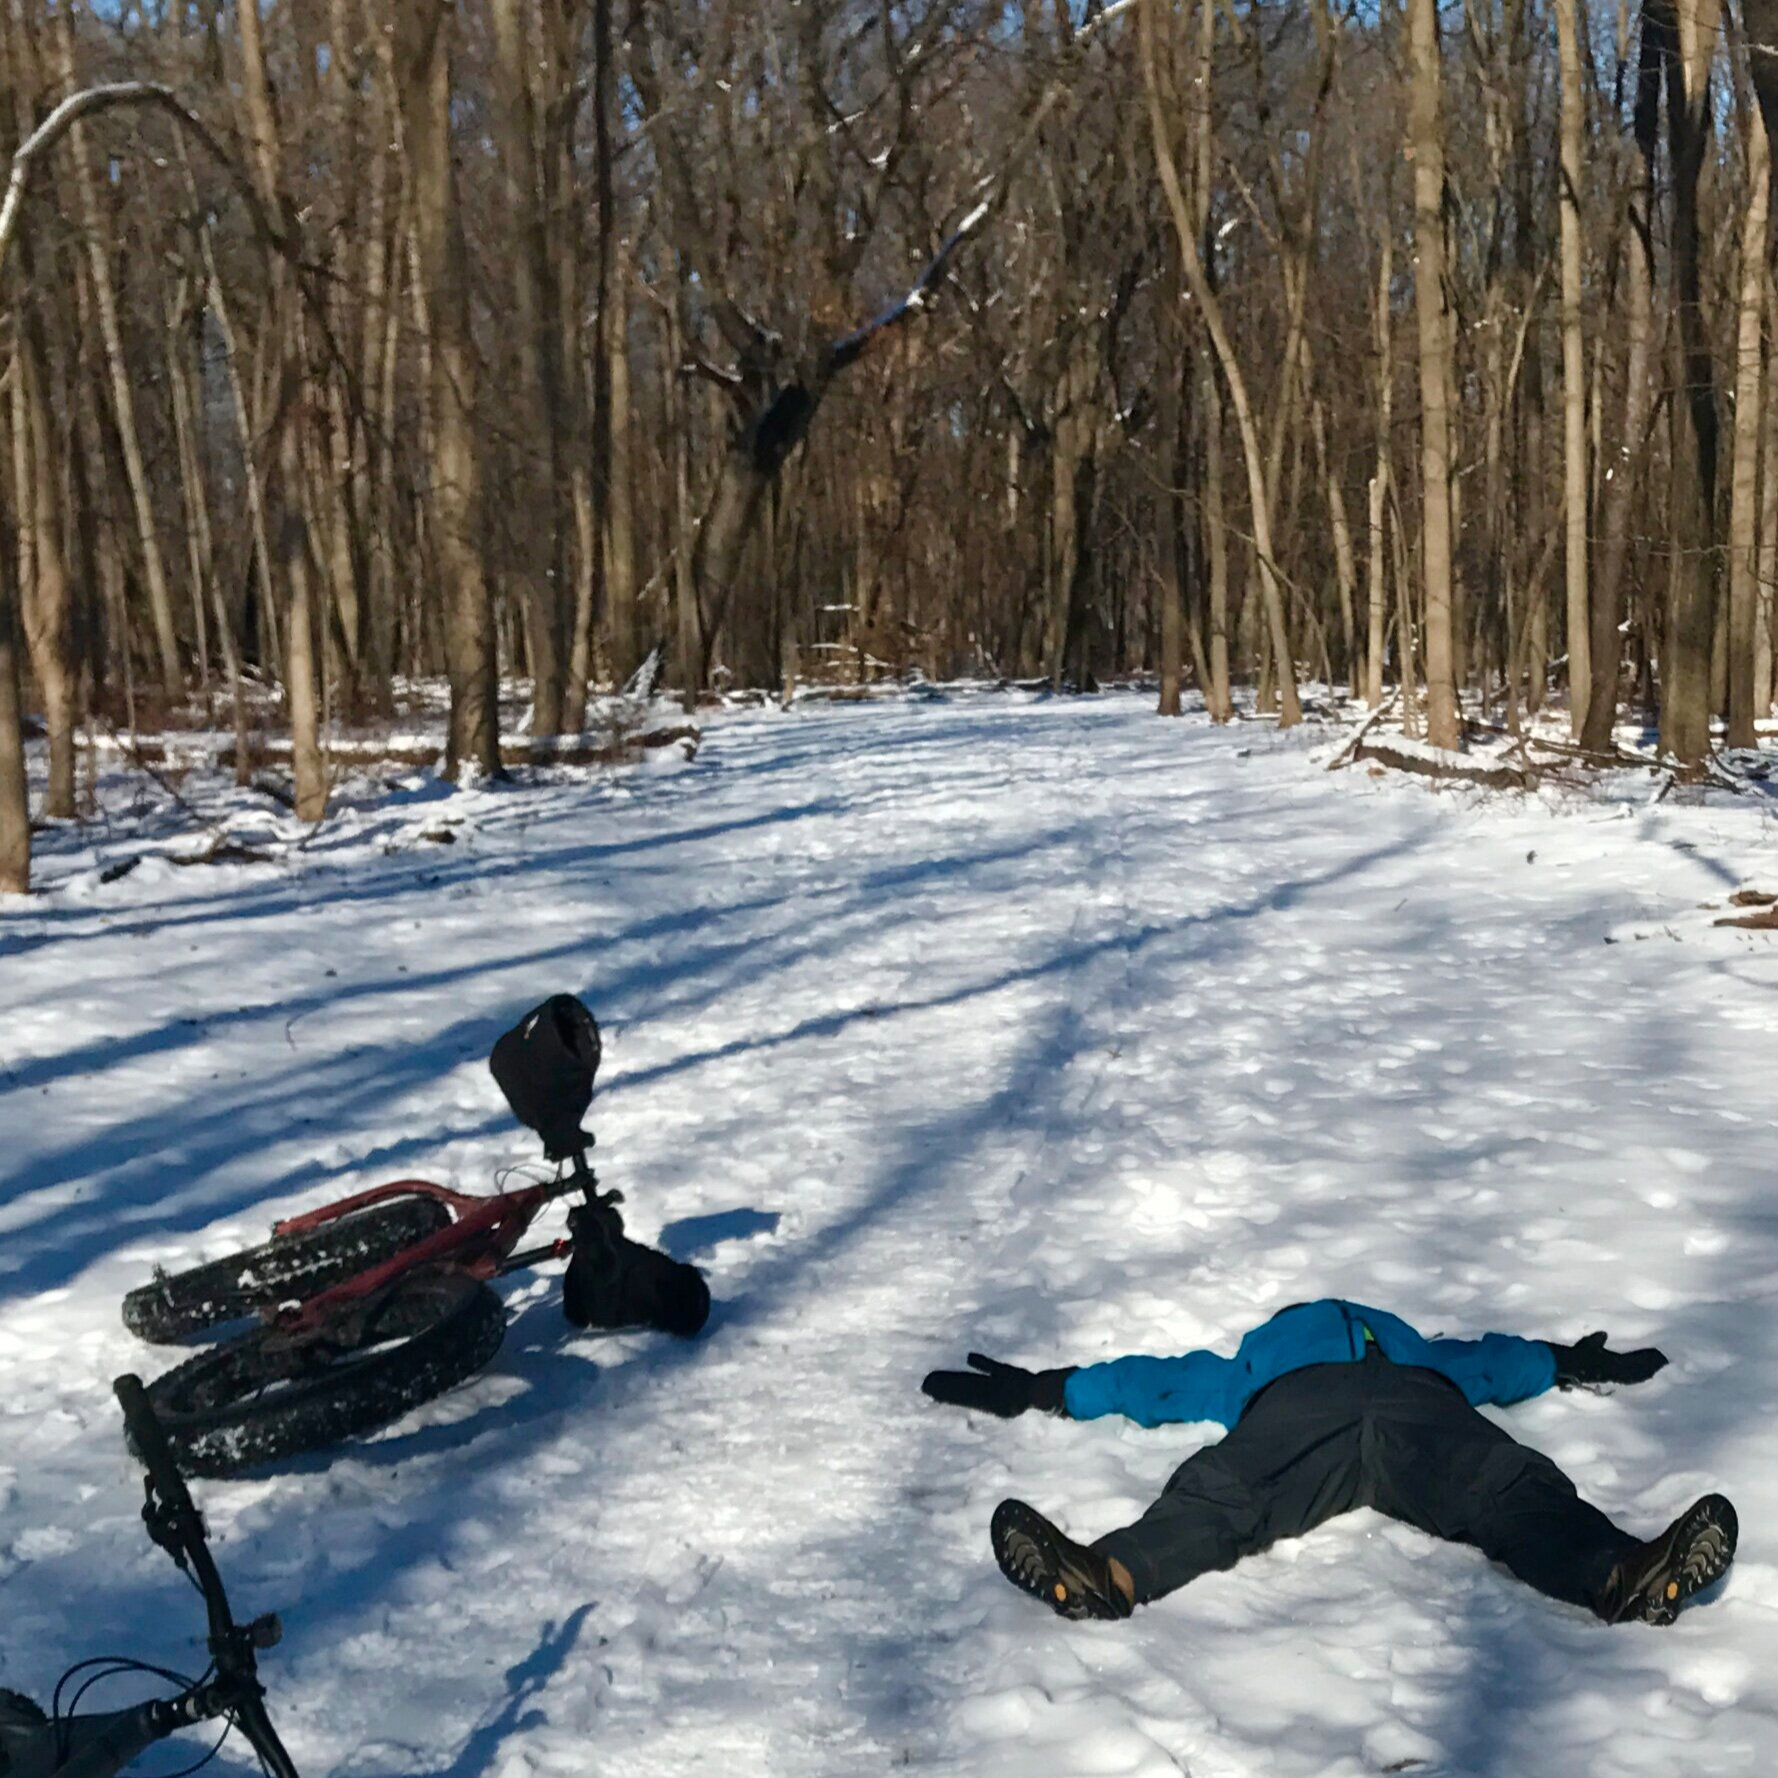 Snow angel at -4°F. Don't try this without good base layers!